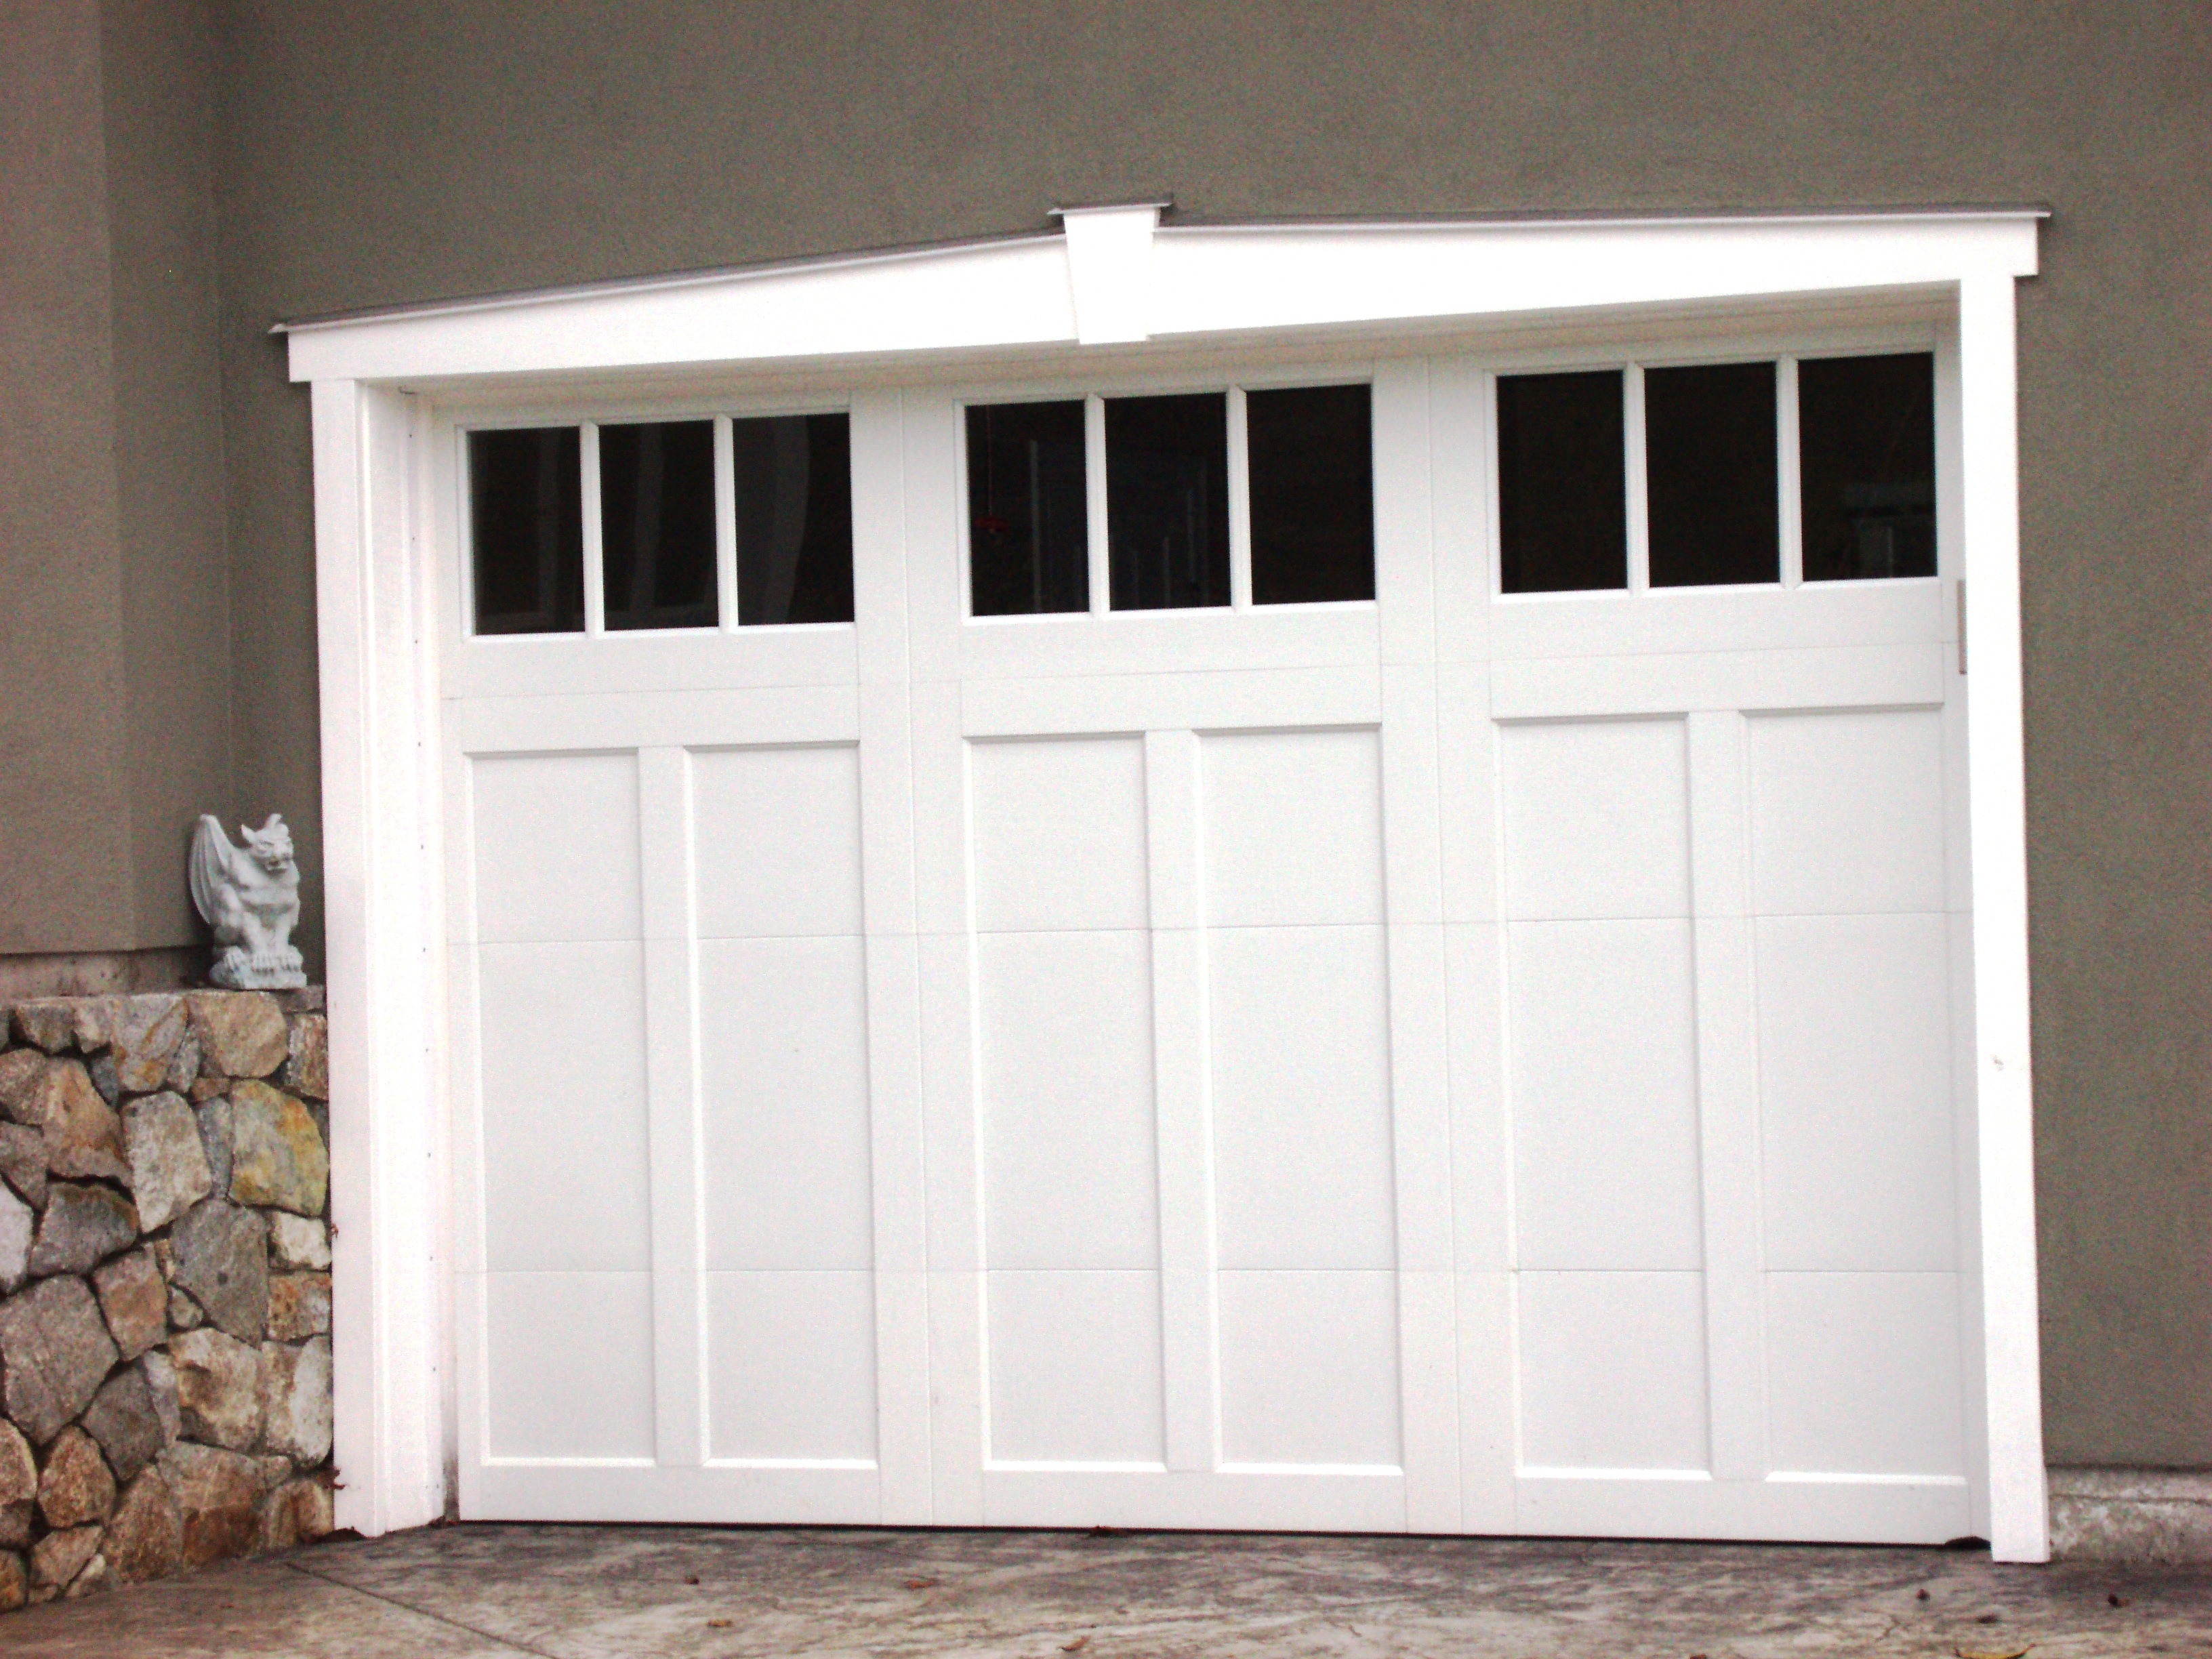 Coachman Collection Harbour Door & Clopay Coachman Garage Door - Garage Designs